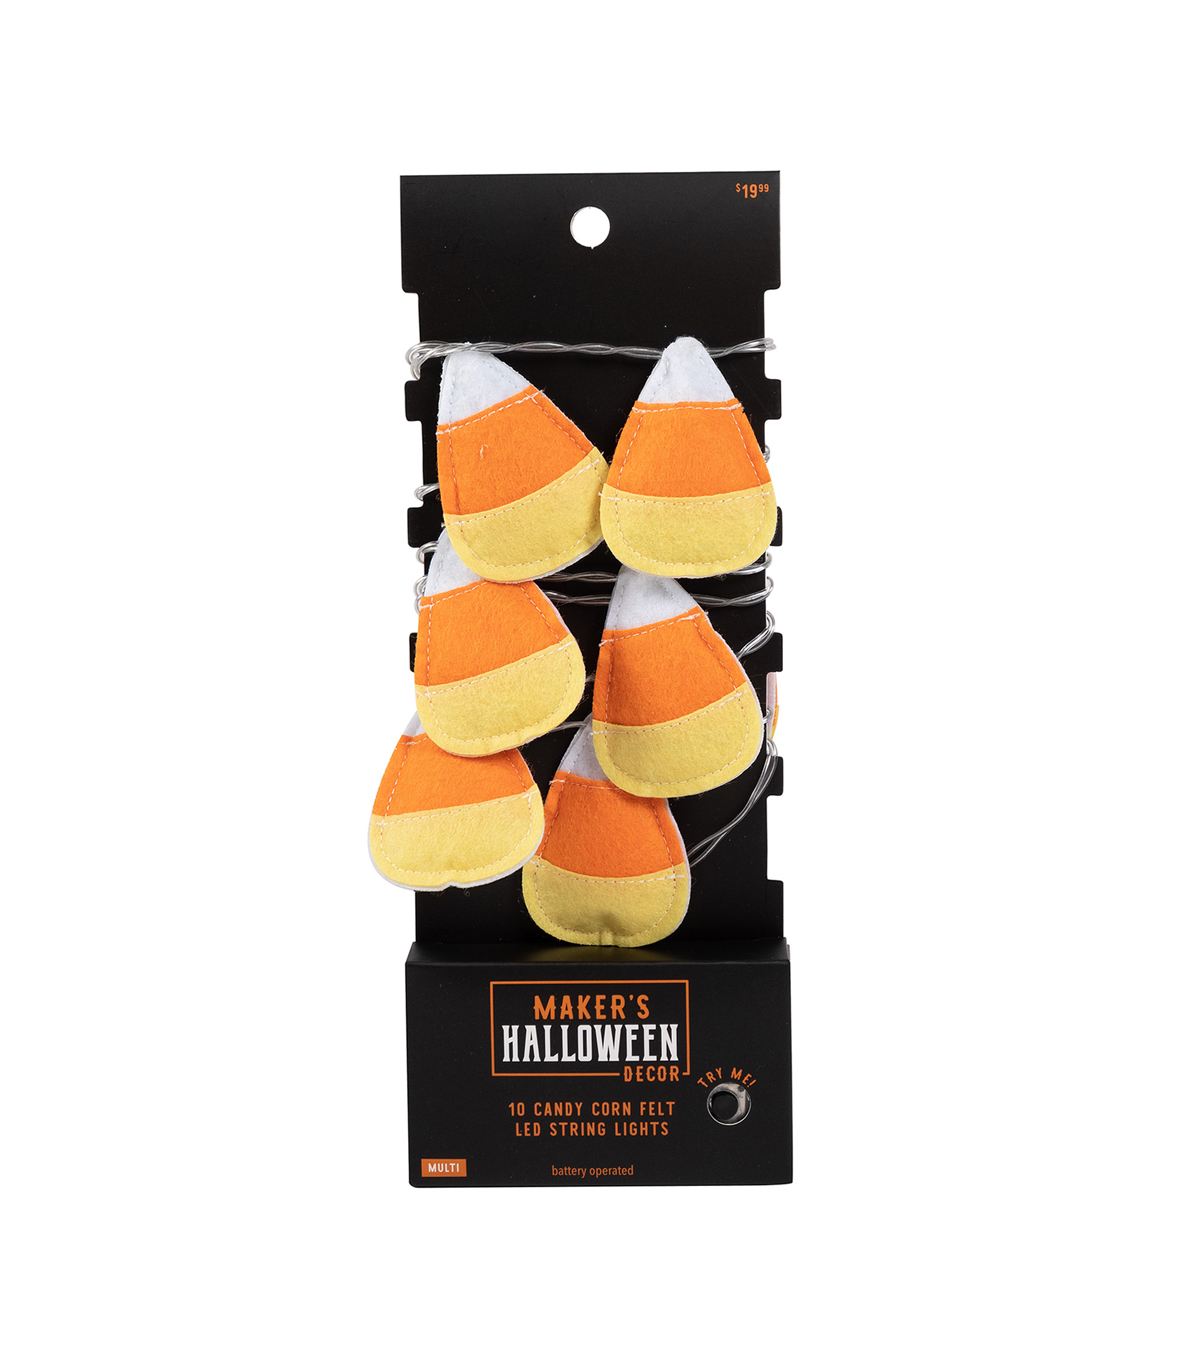 Maker\u0027s Halloween Decor 10 ct Multi Felt Candy Corn LED String Lights